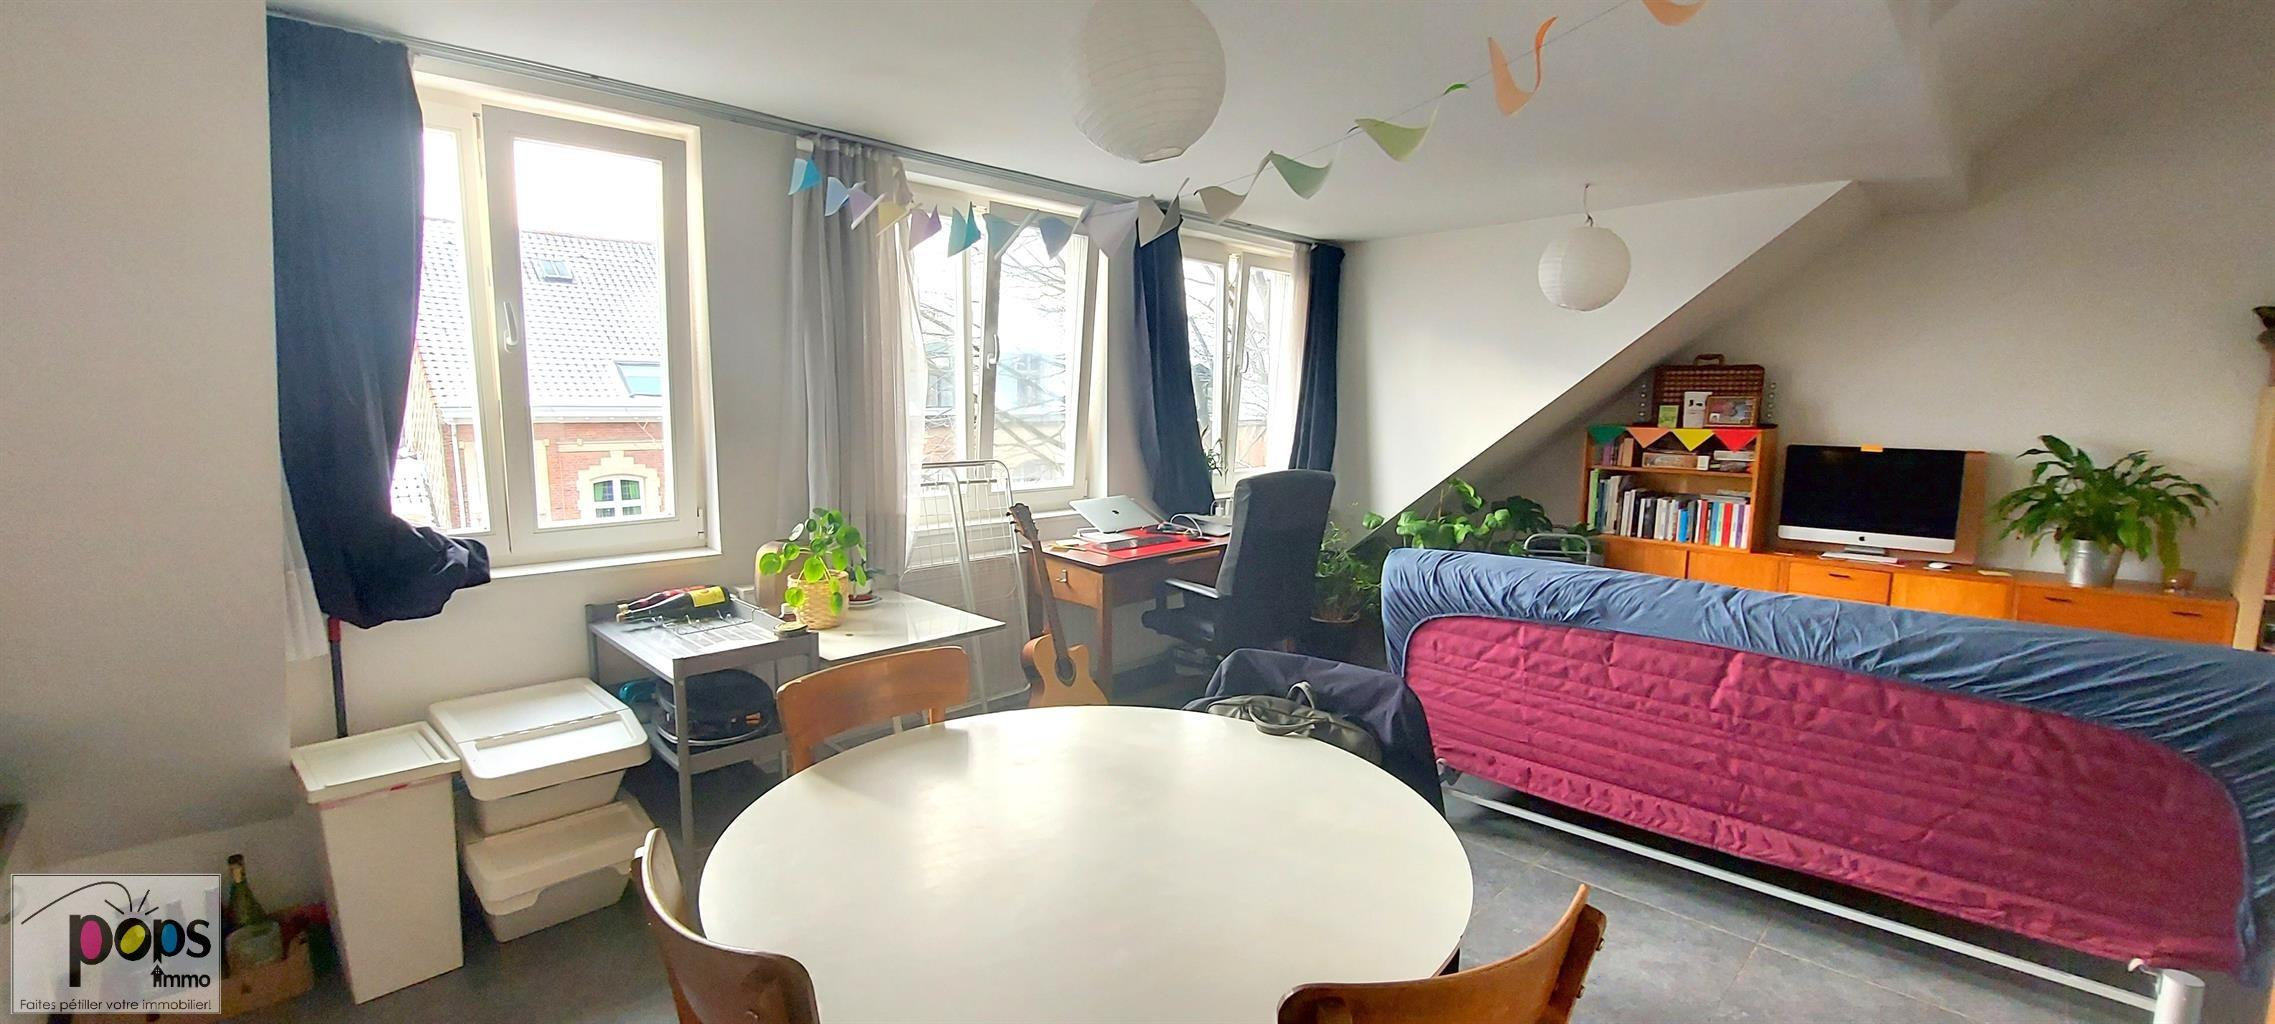 Appartement - Uccle - #4294712-15